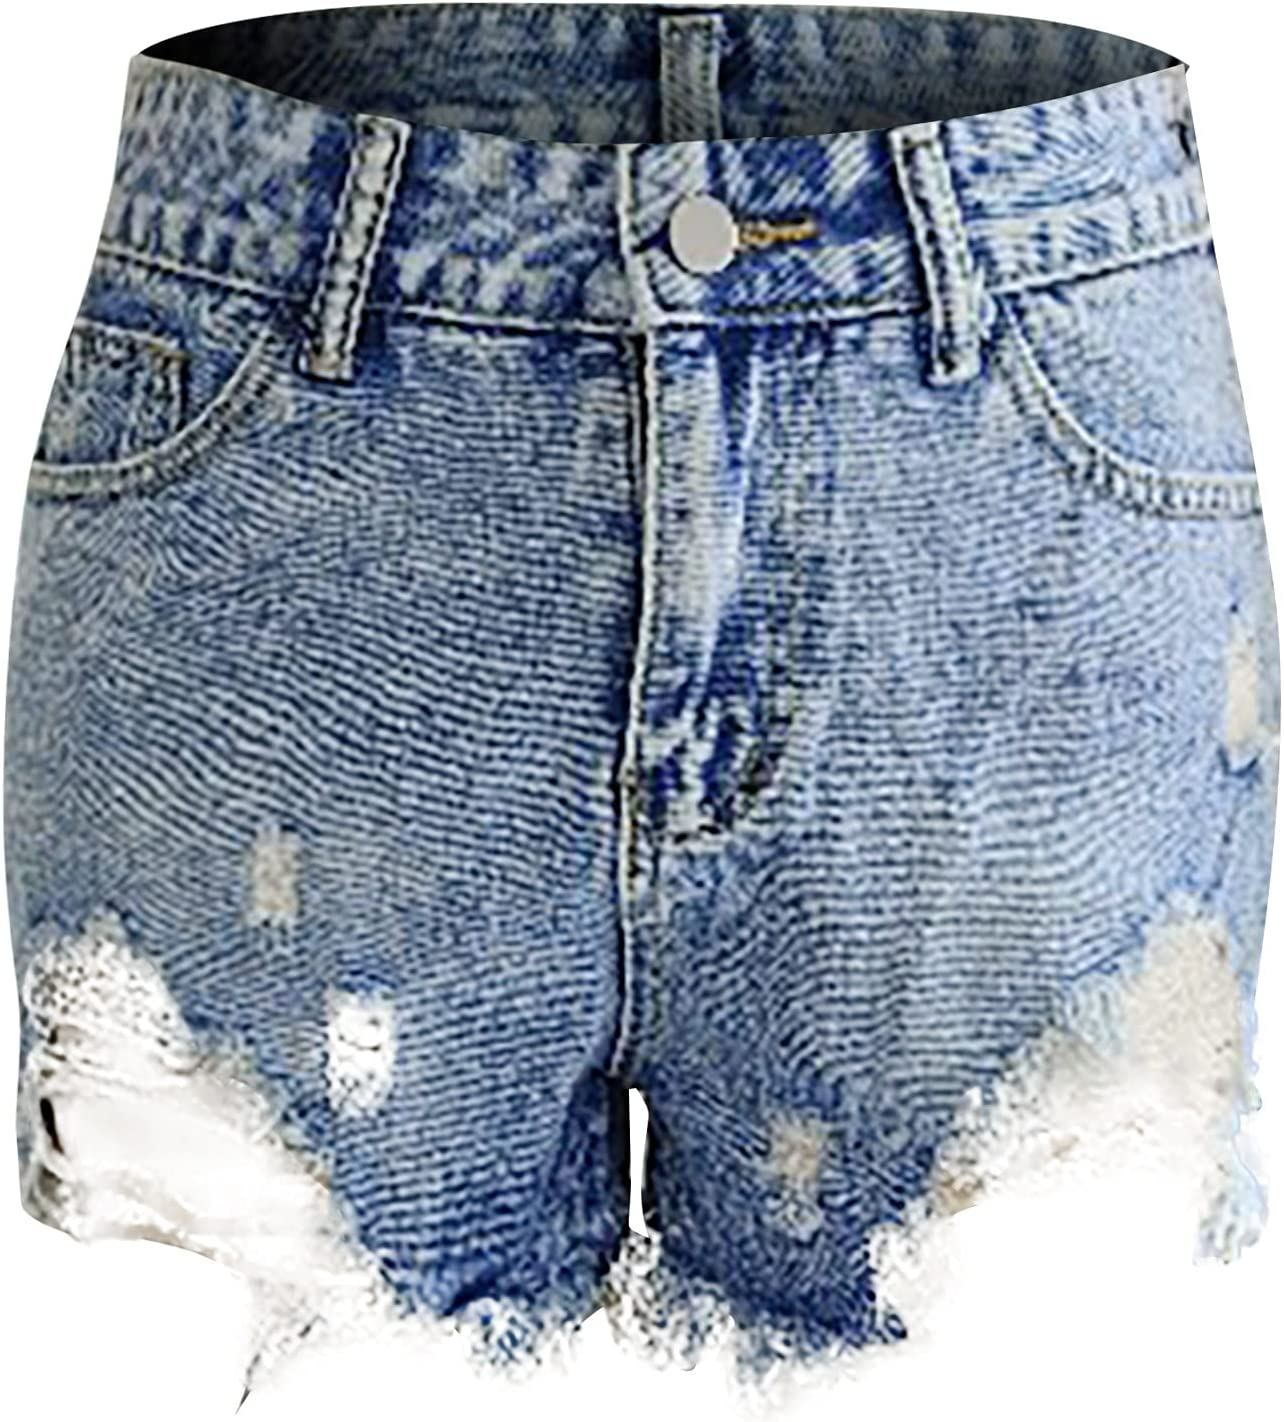 Women's Ripped Denim Jean Shorts High Waisted Stretchy Short Jeans Cut Off Denim Shorts Distressed Hot Shorts